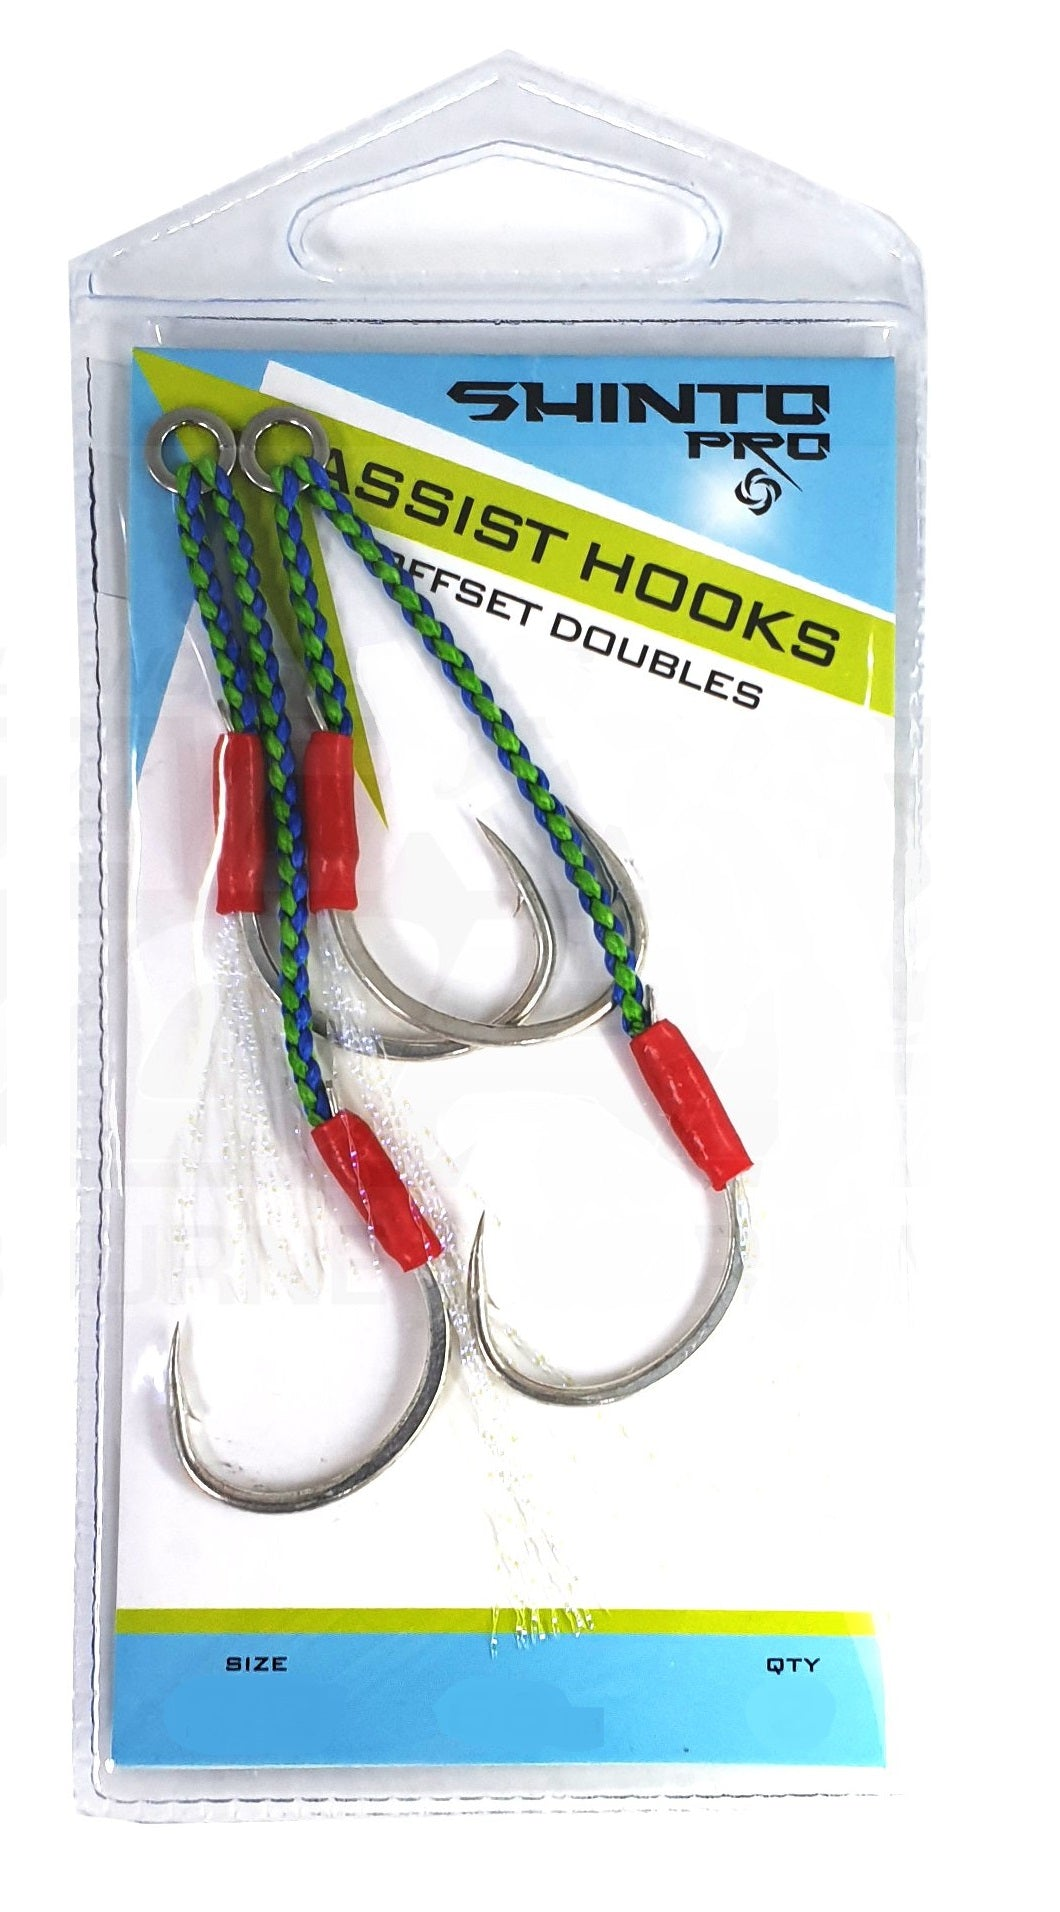 Shinto Pro SH040 Offset Medium Double Assist Hook